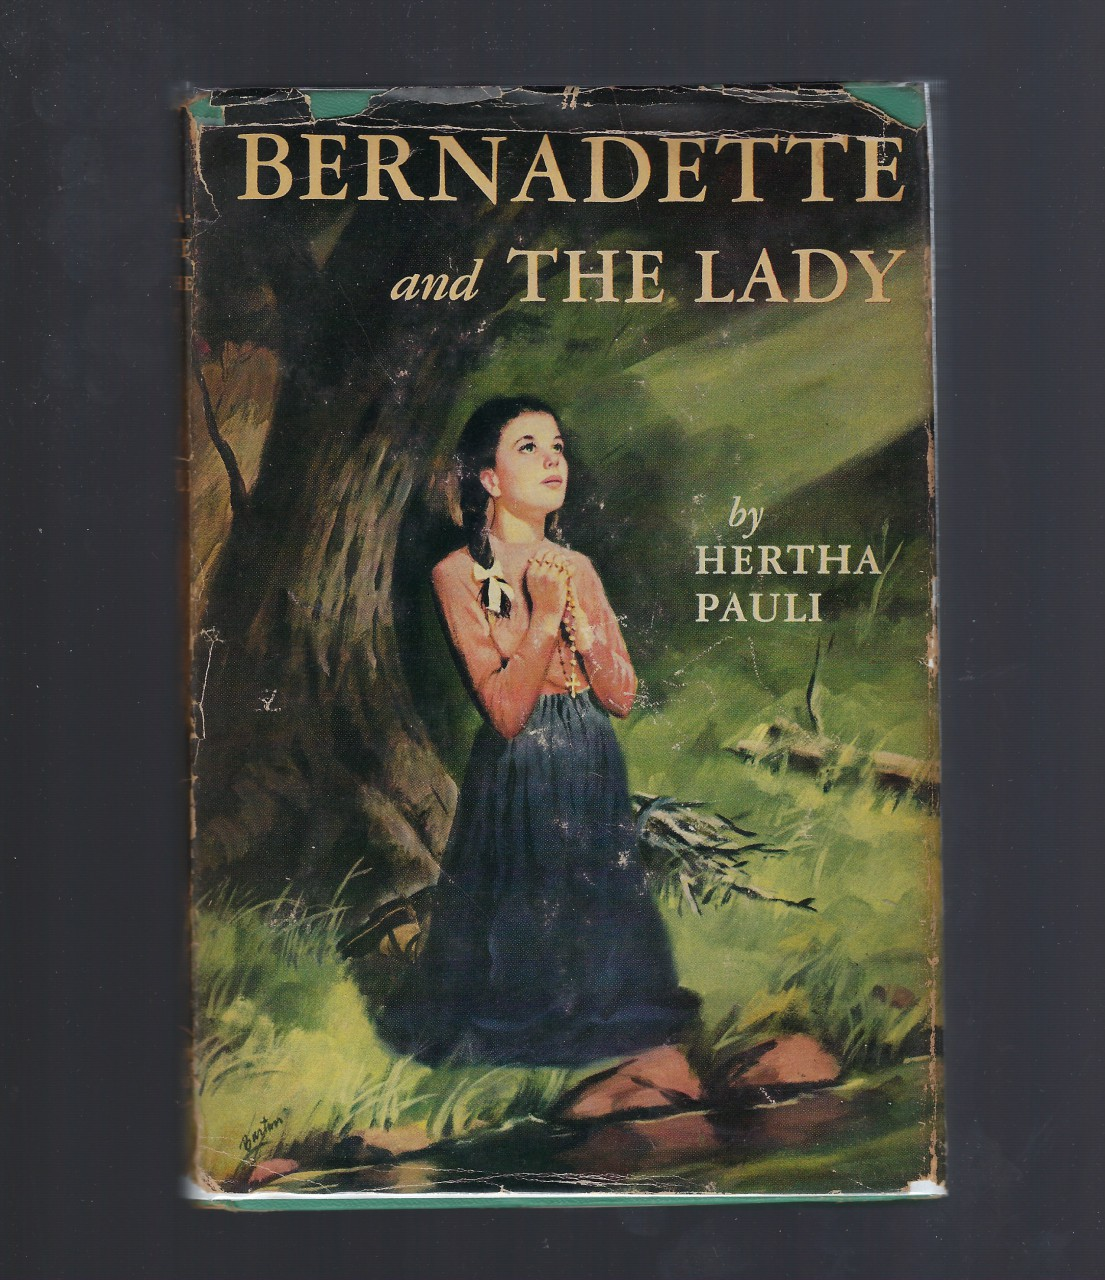 Bernadette and The Lady #5 Vision Catholic HB/DJ, Hertha Pauli